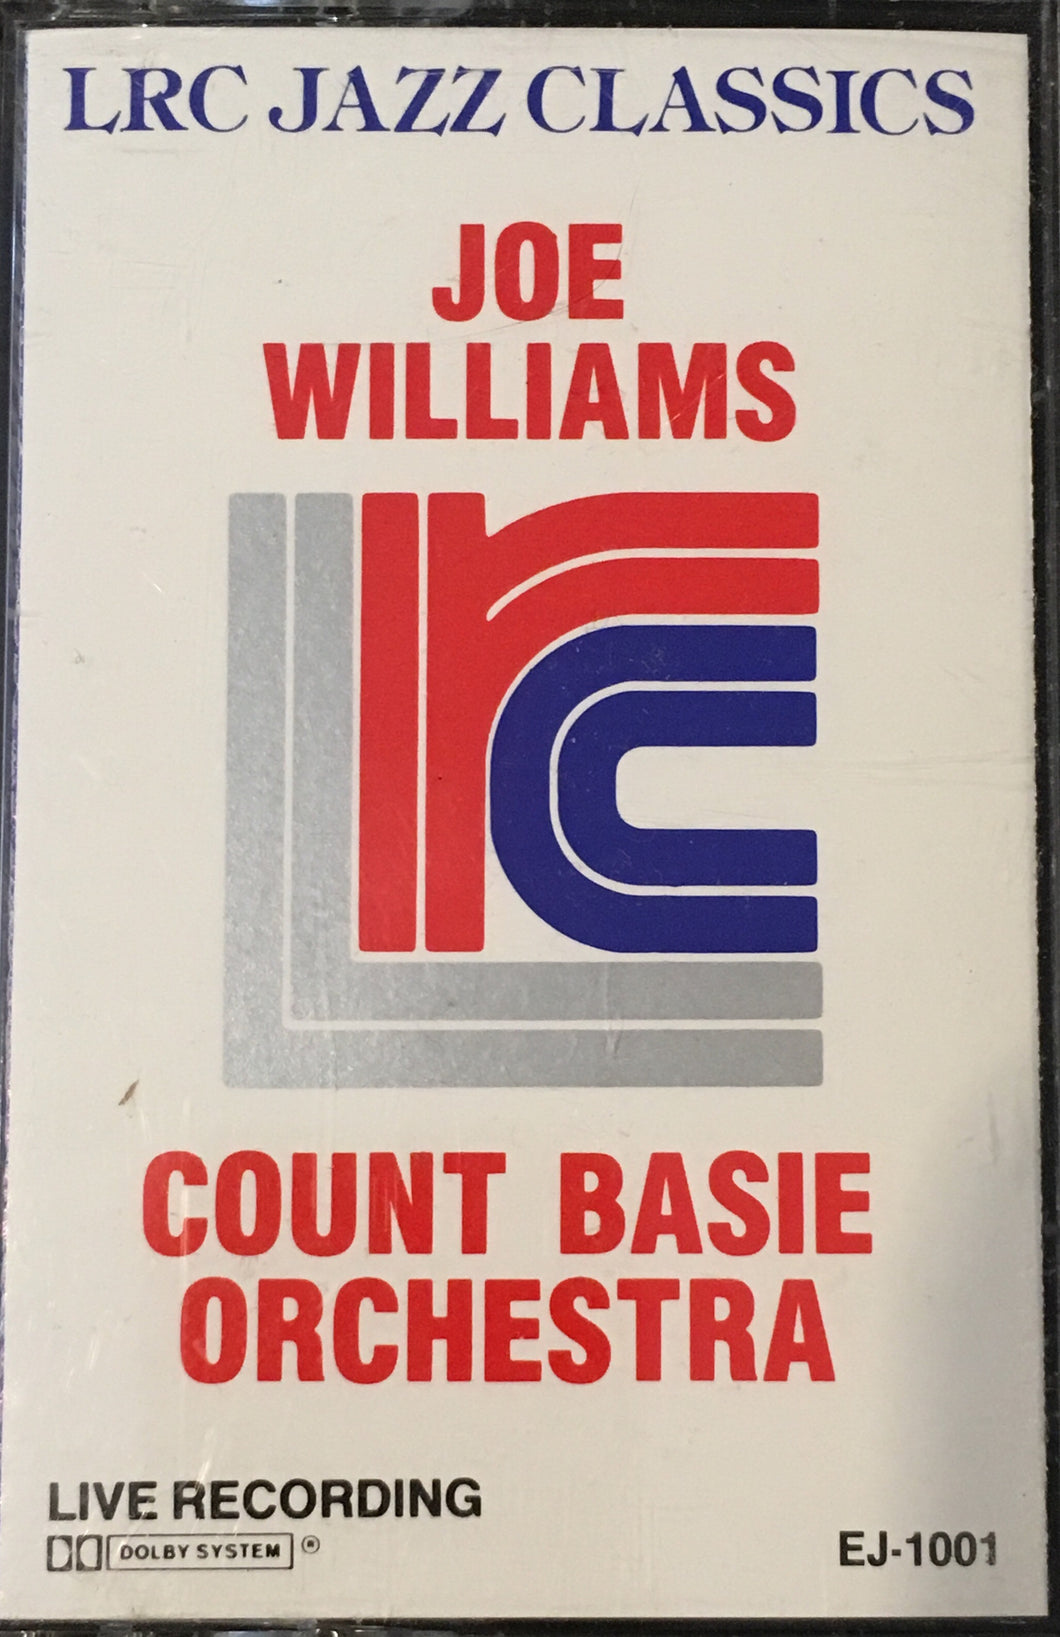 Joe Williams Count Basie Orchestra Cassette